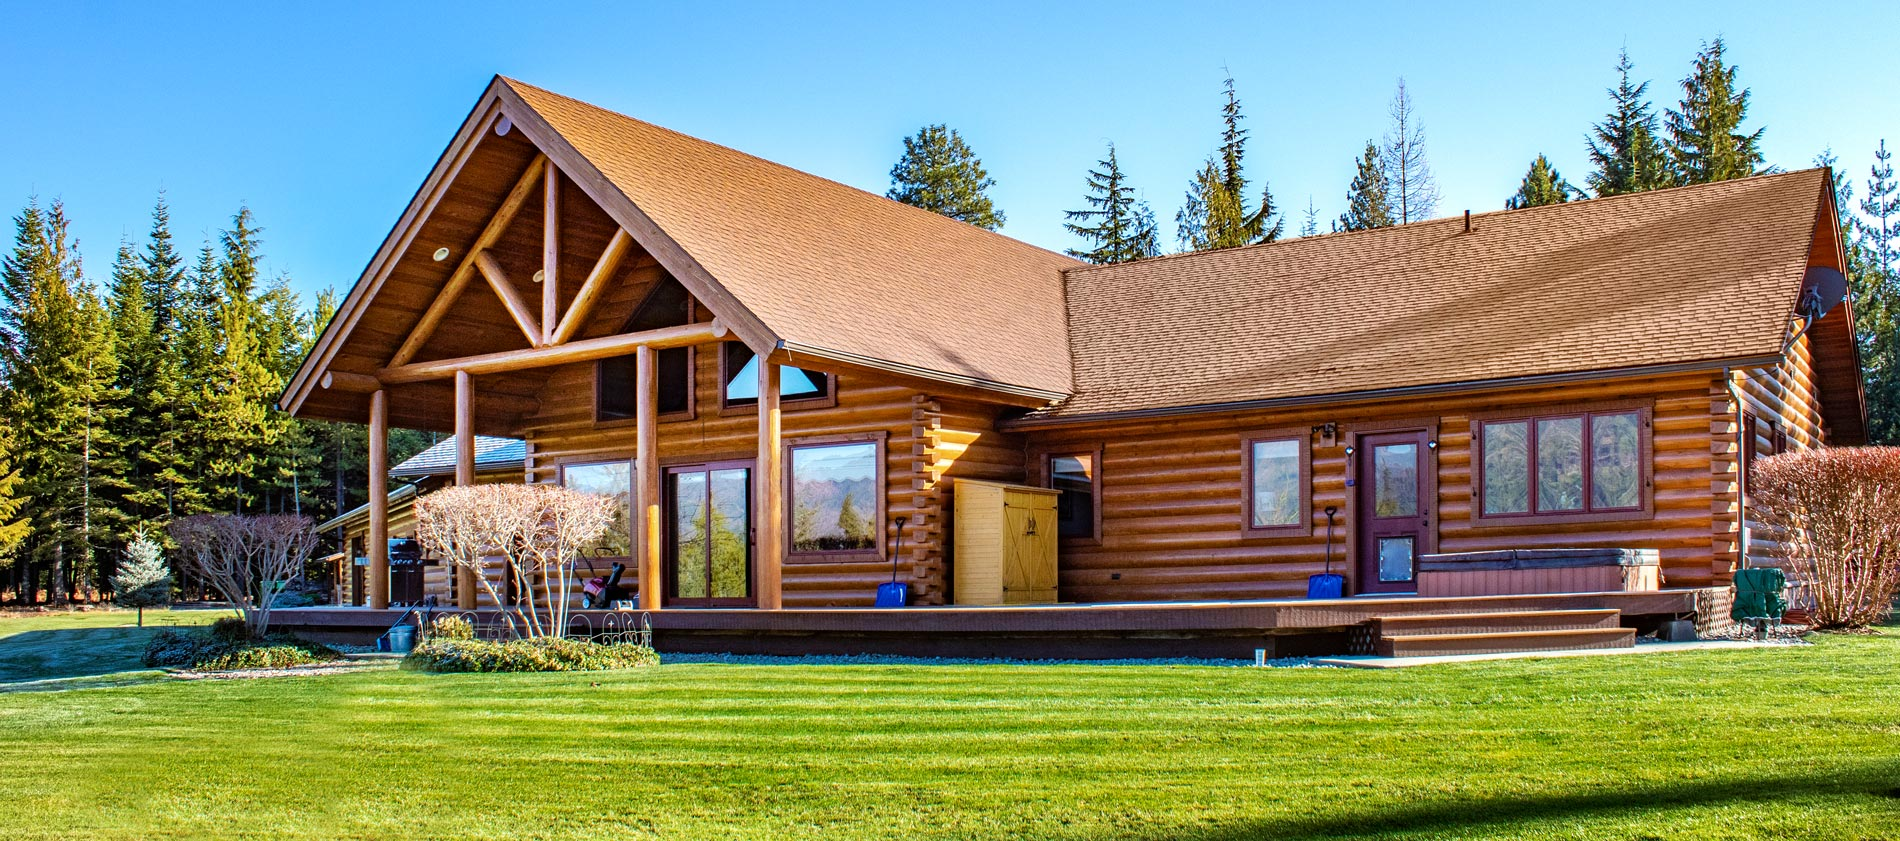 Meadows at Fall Creek Luxury Log Home for Sale